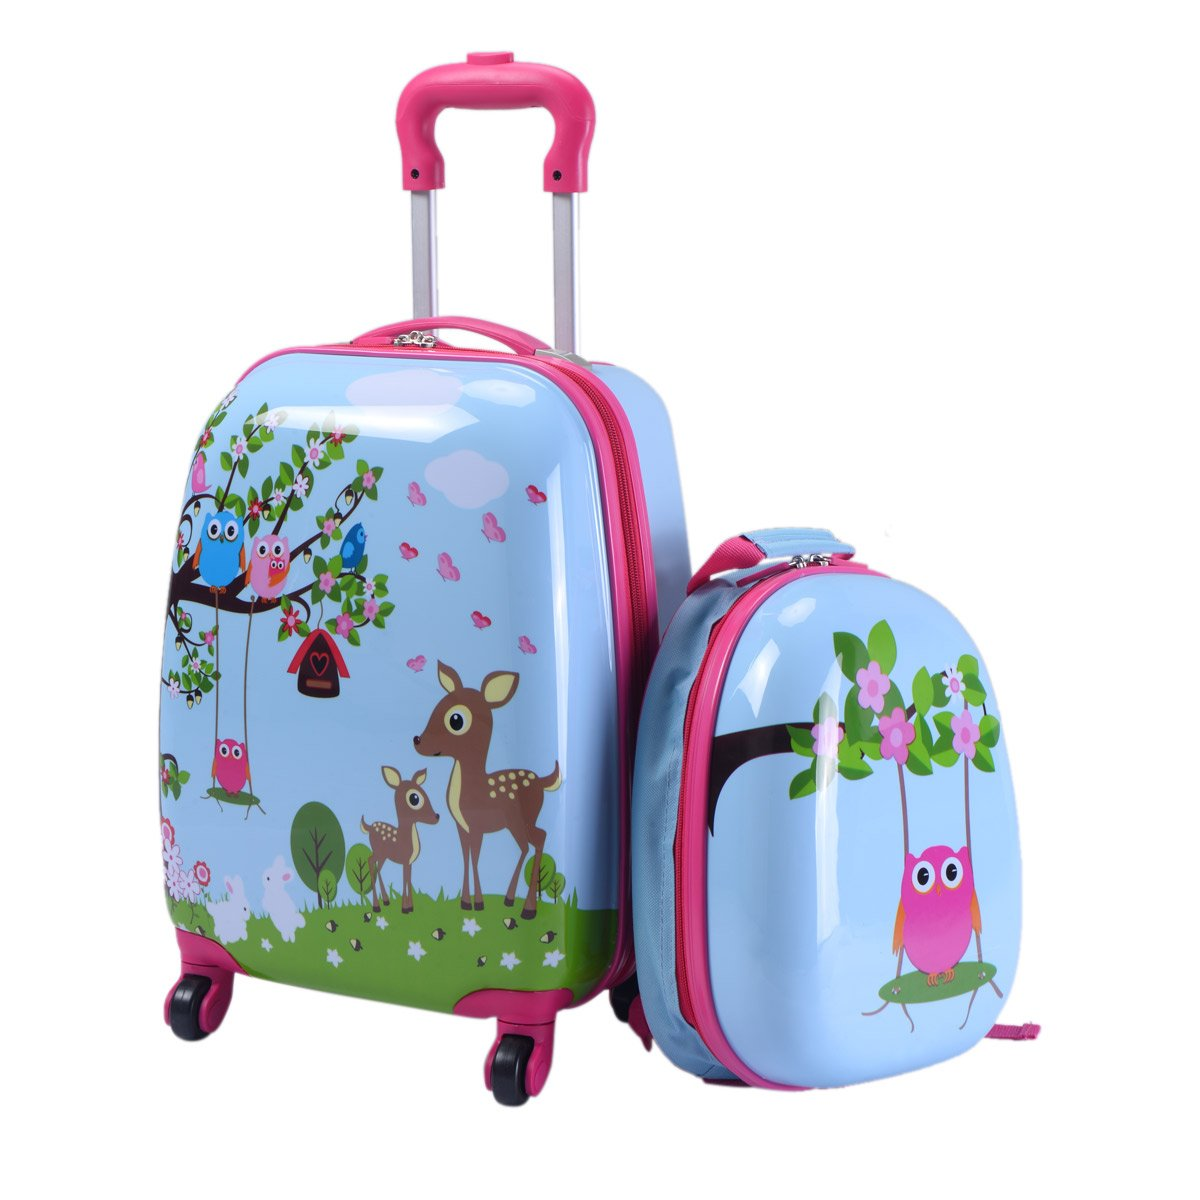 abb37670a530 CASART 2 PCS Kids Luggage Set ABS Children Backpack Suitcase Trolley Bag  Travel School 12'' 16'' (Style 2)